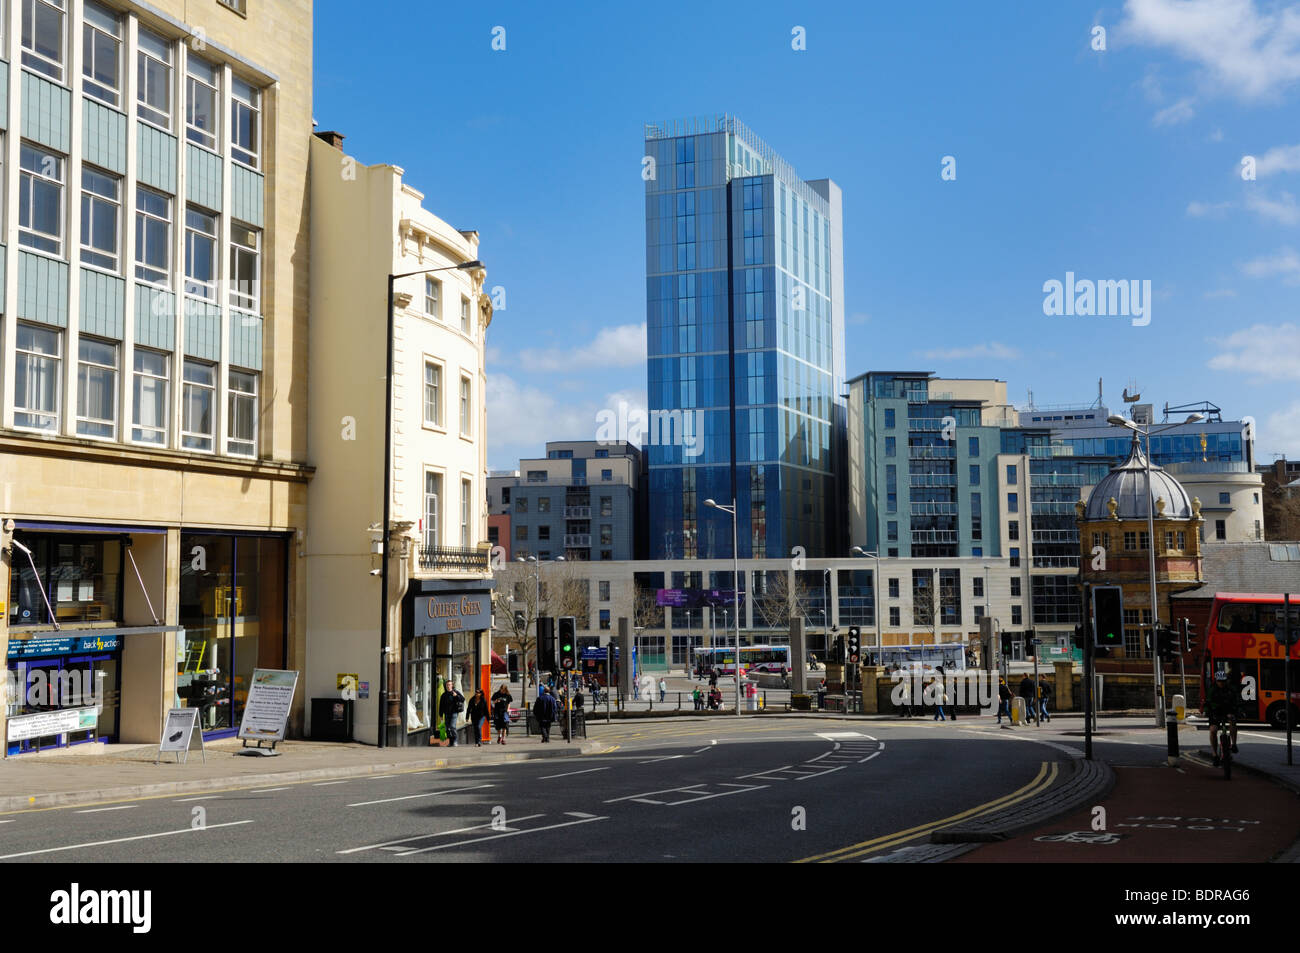 The new Radisson Blu hotel in Bristol City Centre, St Augustine's Parade, England, United Kingdom. - Stock Image